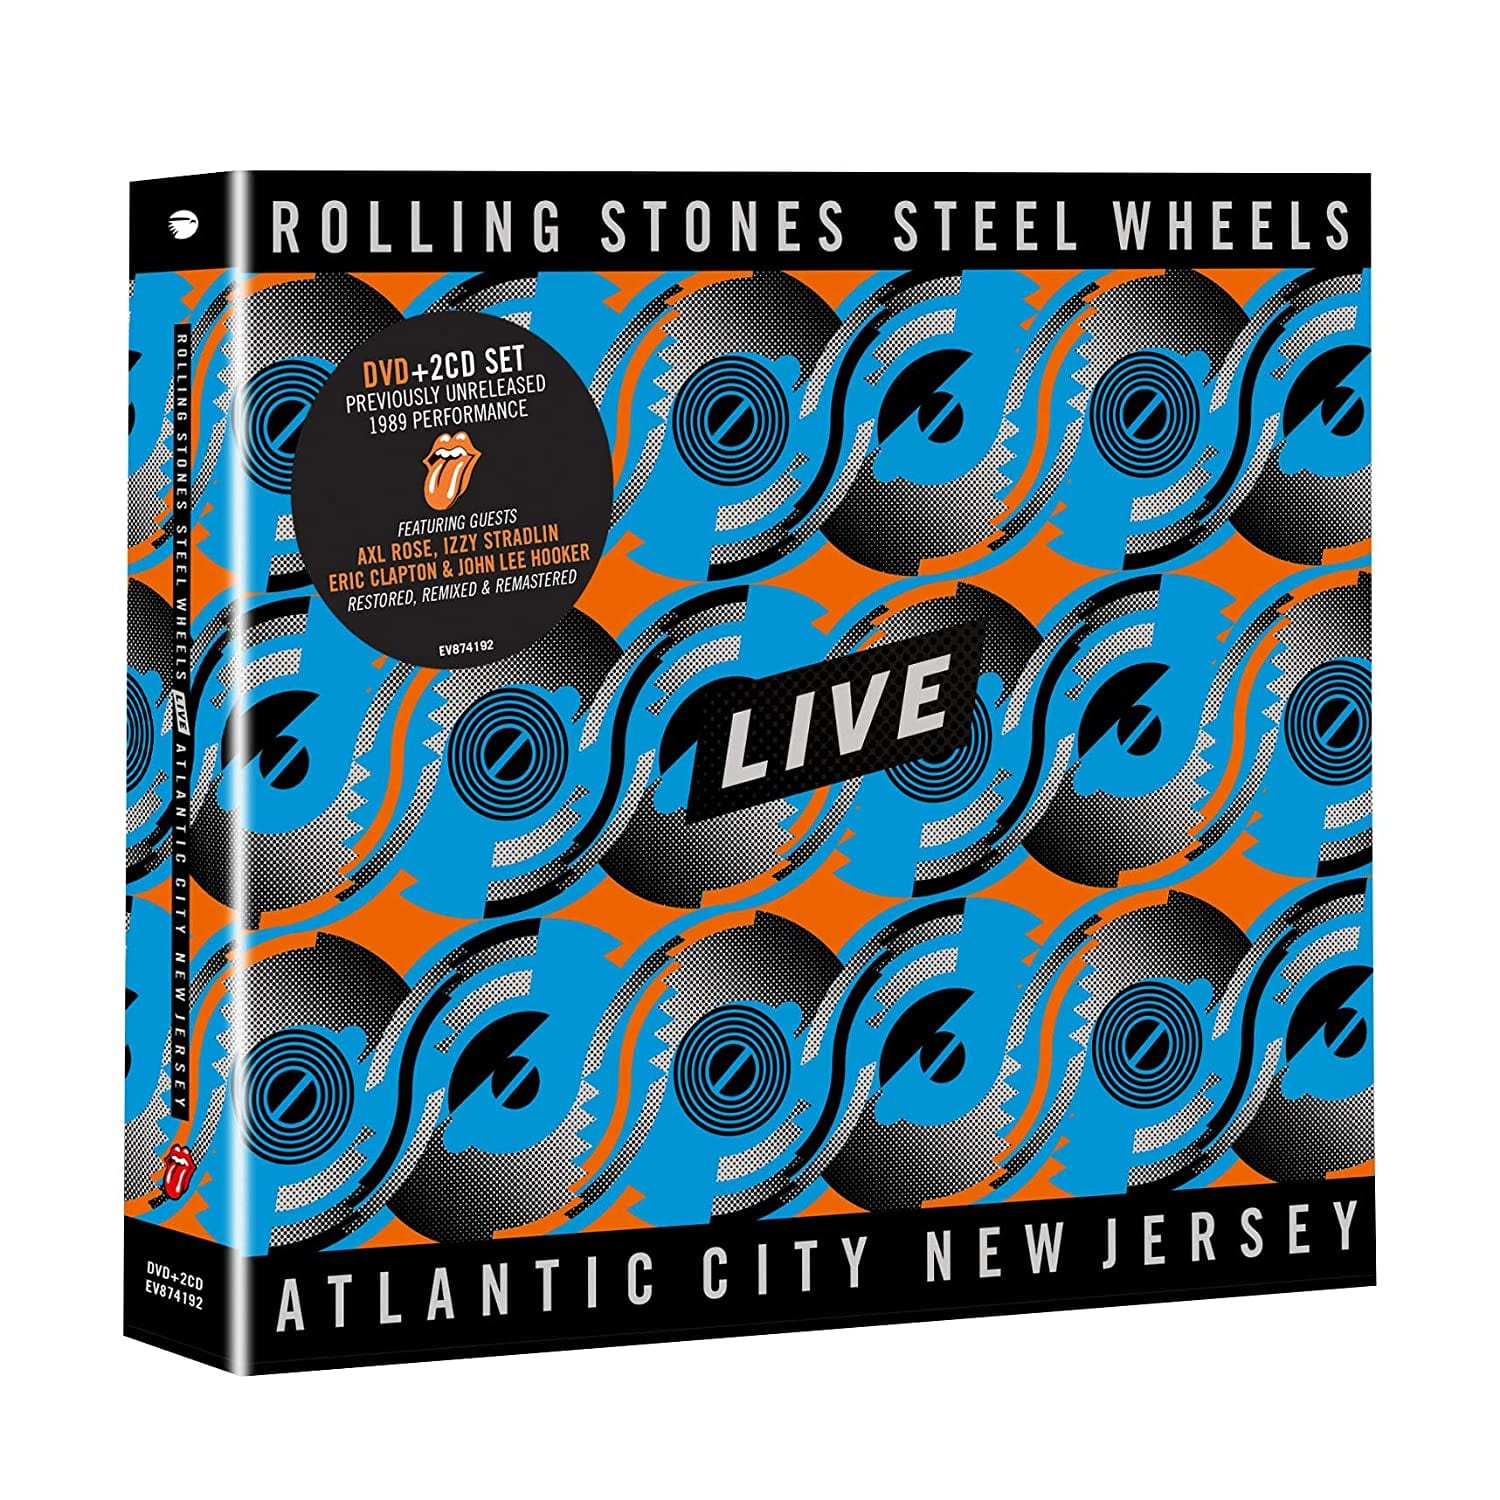 Rolling Stones, The - Steel Wheels Live: Live From Atlantic City, NJ, 1989 [2CD+DVD] - Urban Vinyl | Records, Headphones, and more.